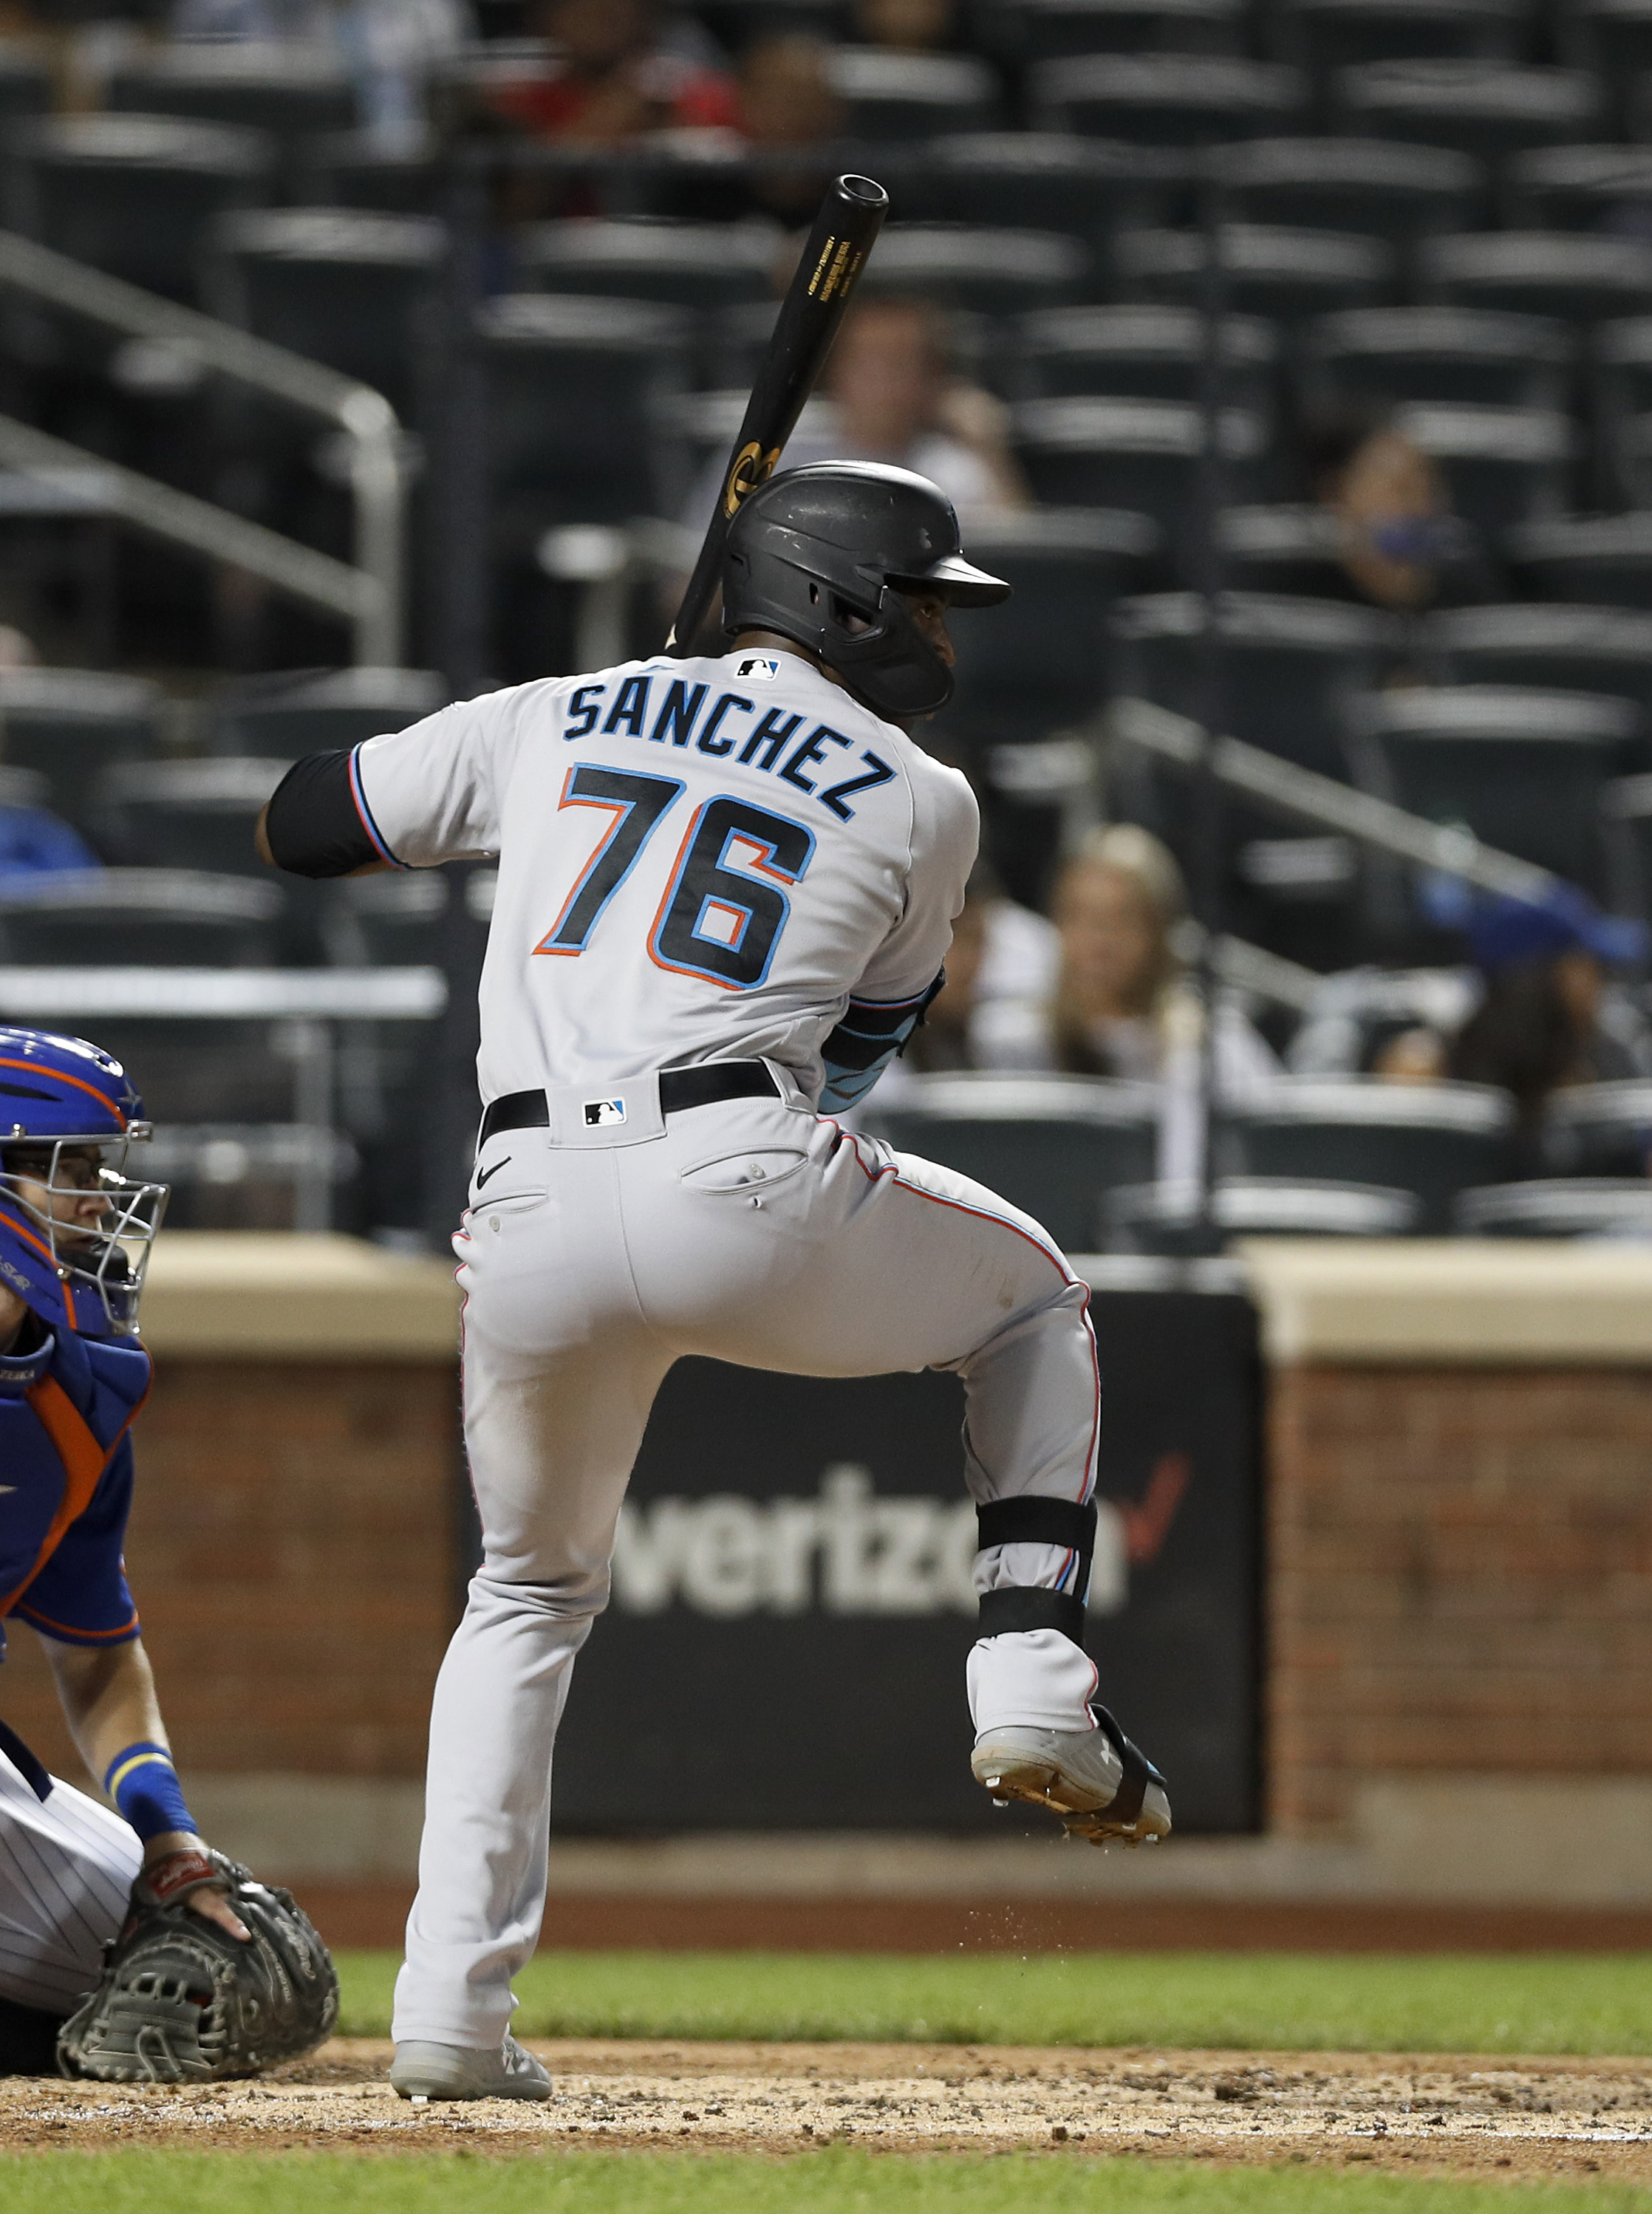 Jesus Sanchez #76 of the Miami Marlins in action against the New York Mets at Citi Field on August 31, 2021